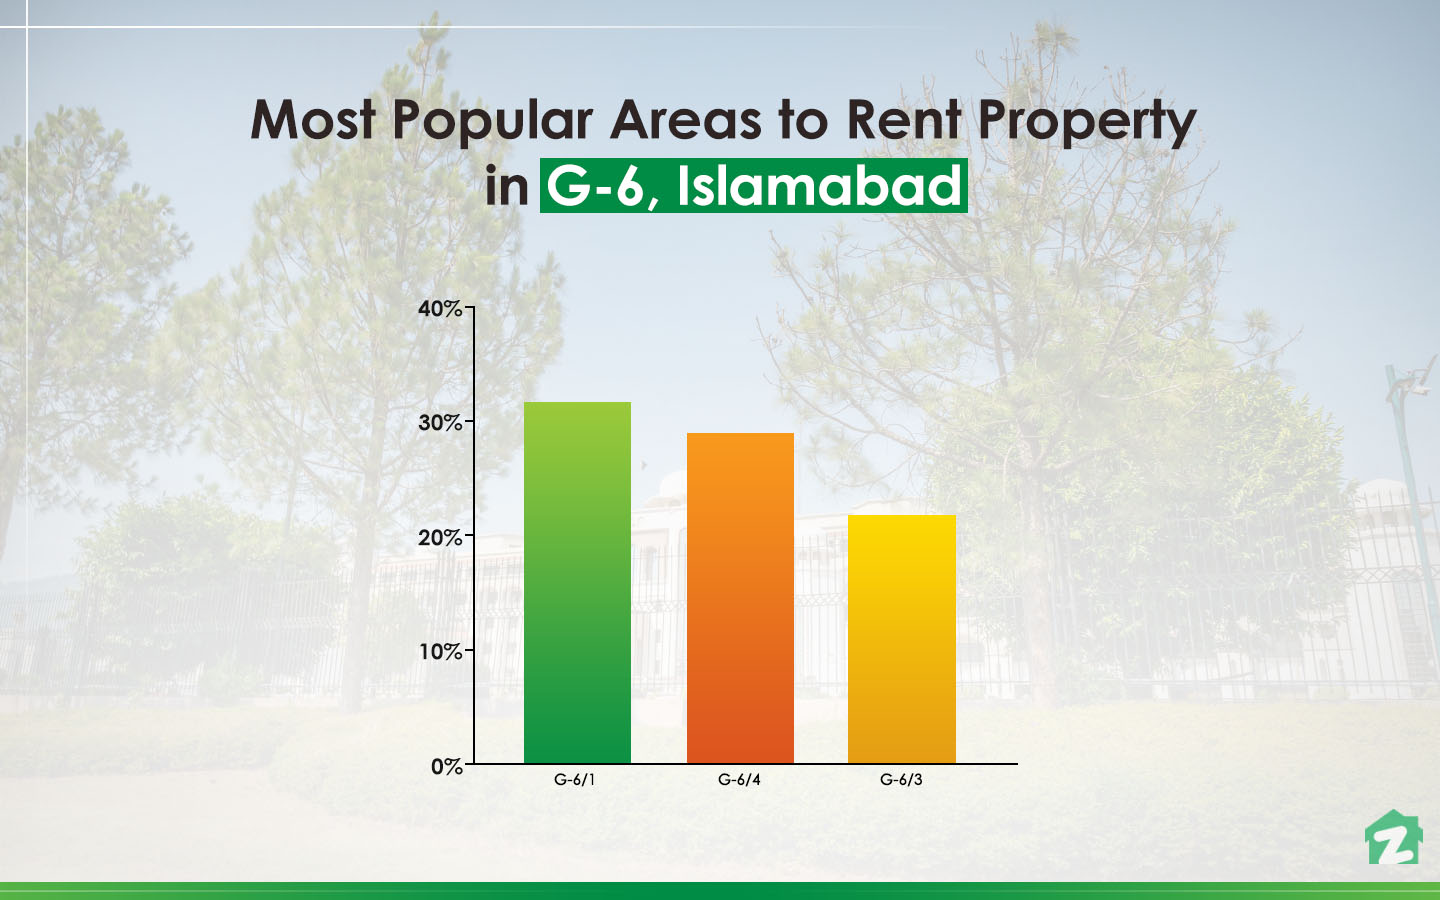 Most Popular Areas for Renting Property in G-6 Islamabad